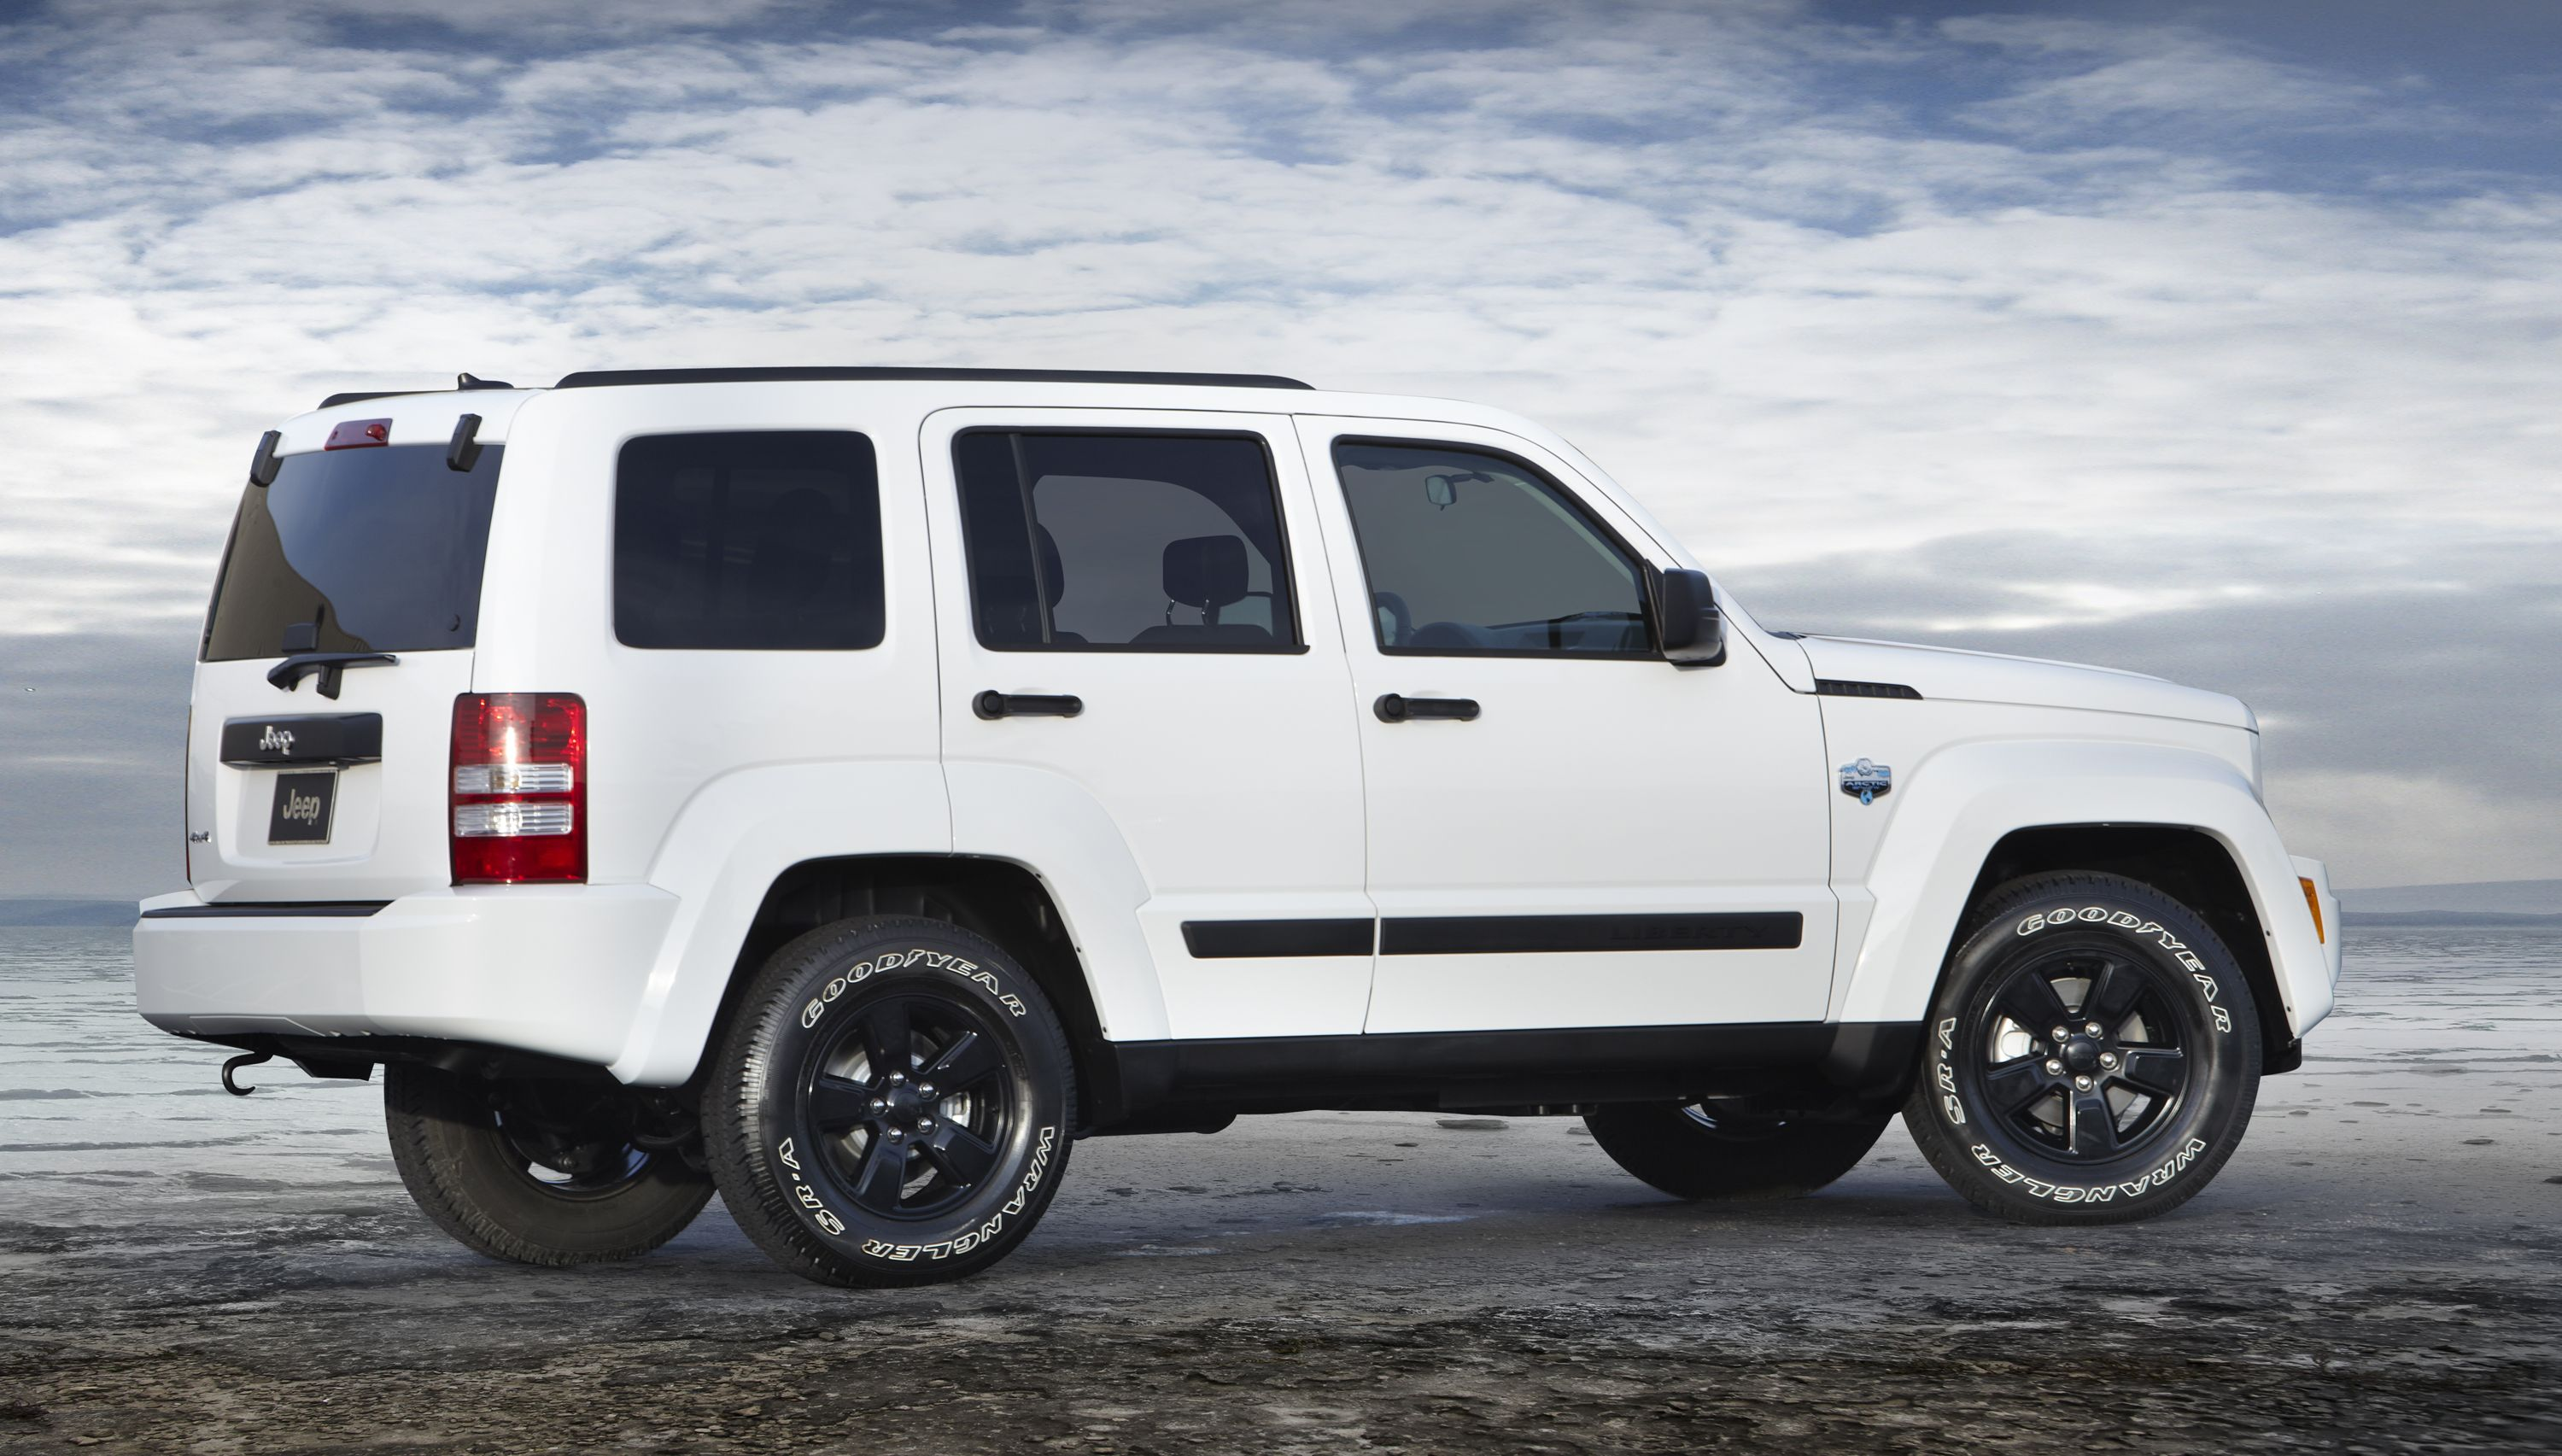 We Offer A Complete Line Of Jeep Liberty Transmission Parts Rebuild And Overhaul Kits To Help You With Manual Transmission Proble Jeep Liberty White Jeep Jeep